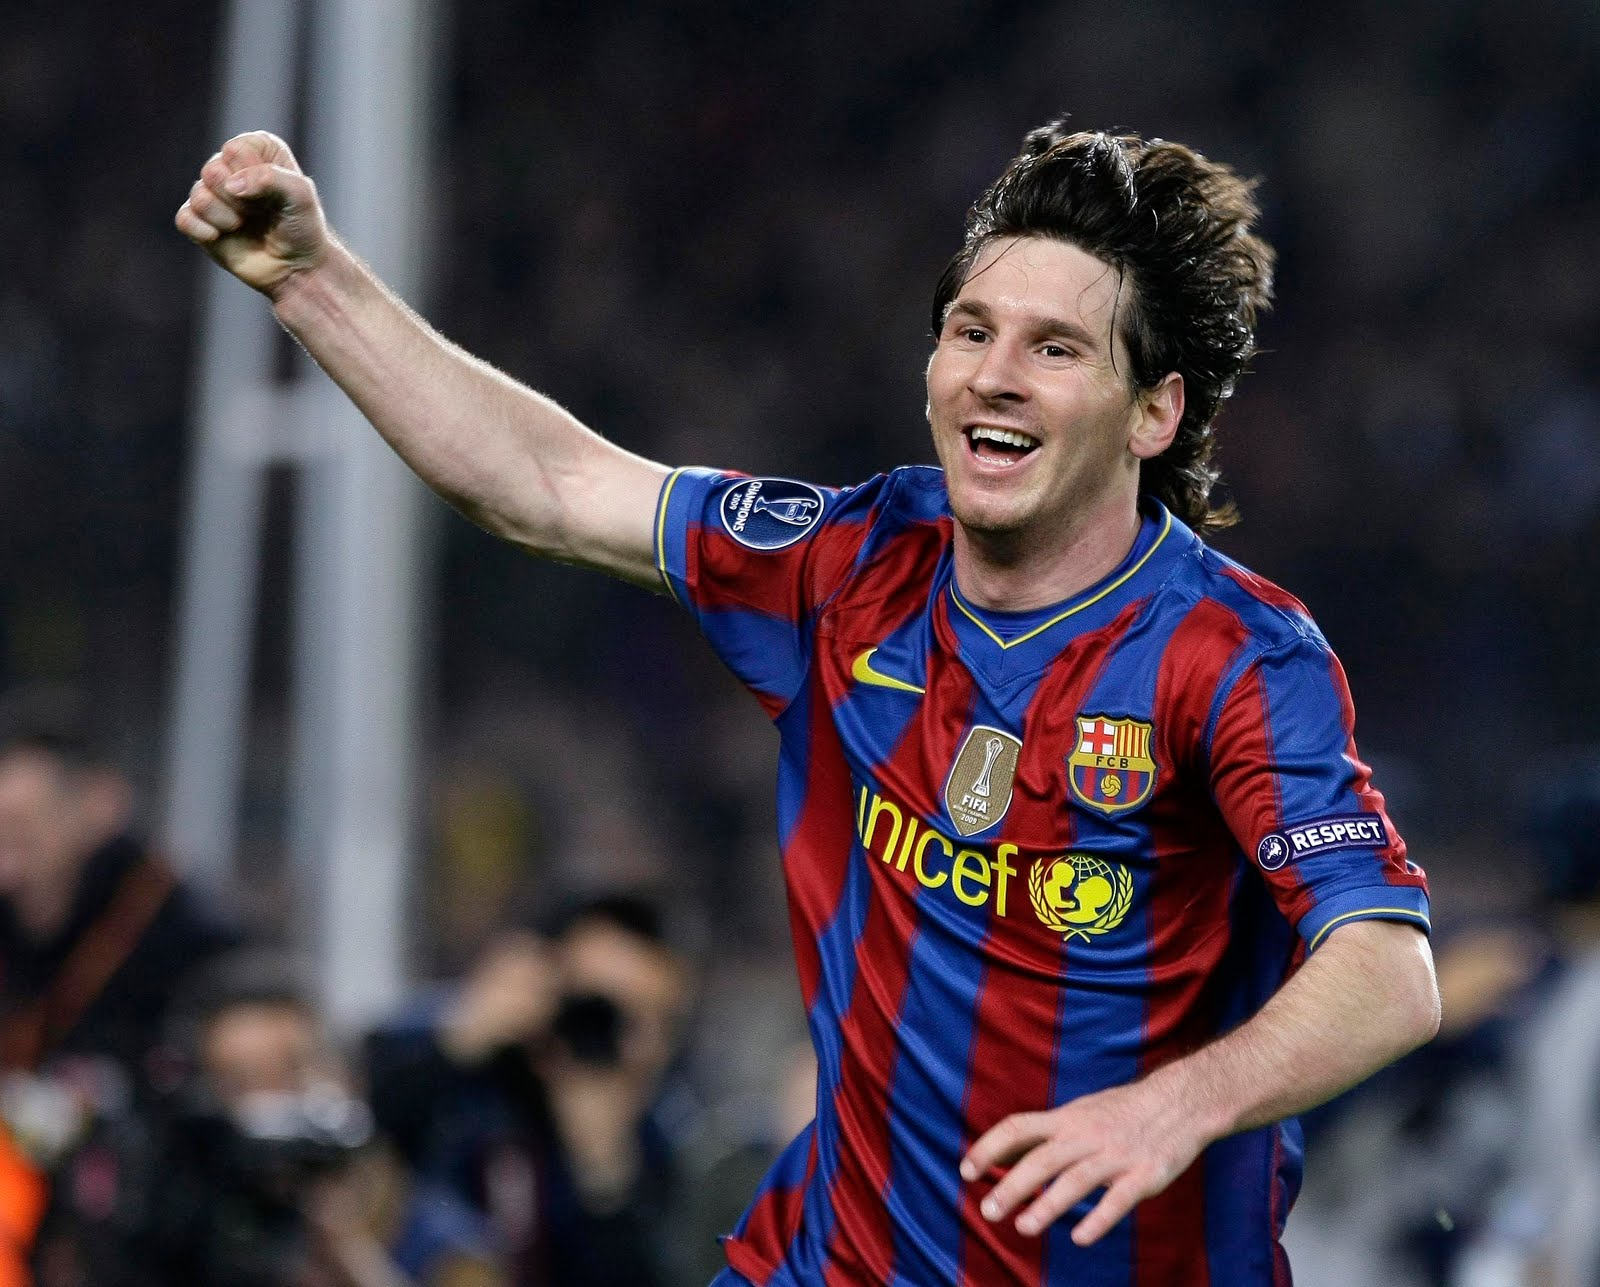 top sports players: lionel messi new hd wallpapers - messi wallpapers